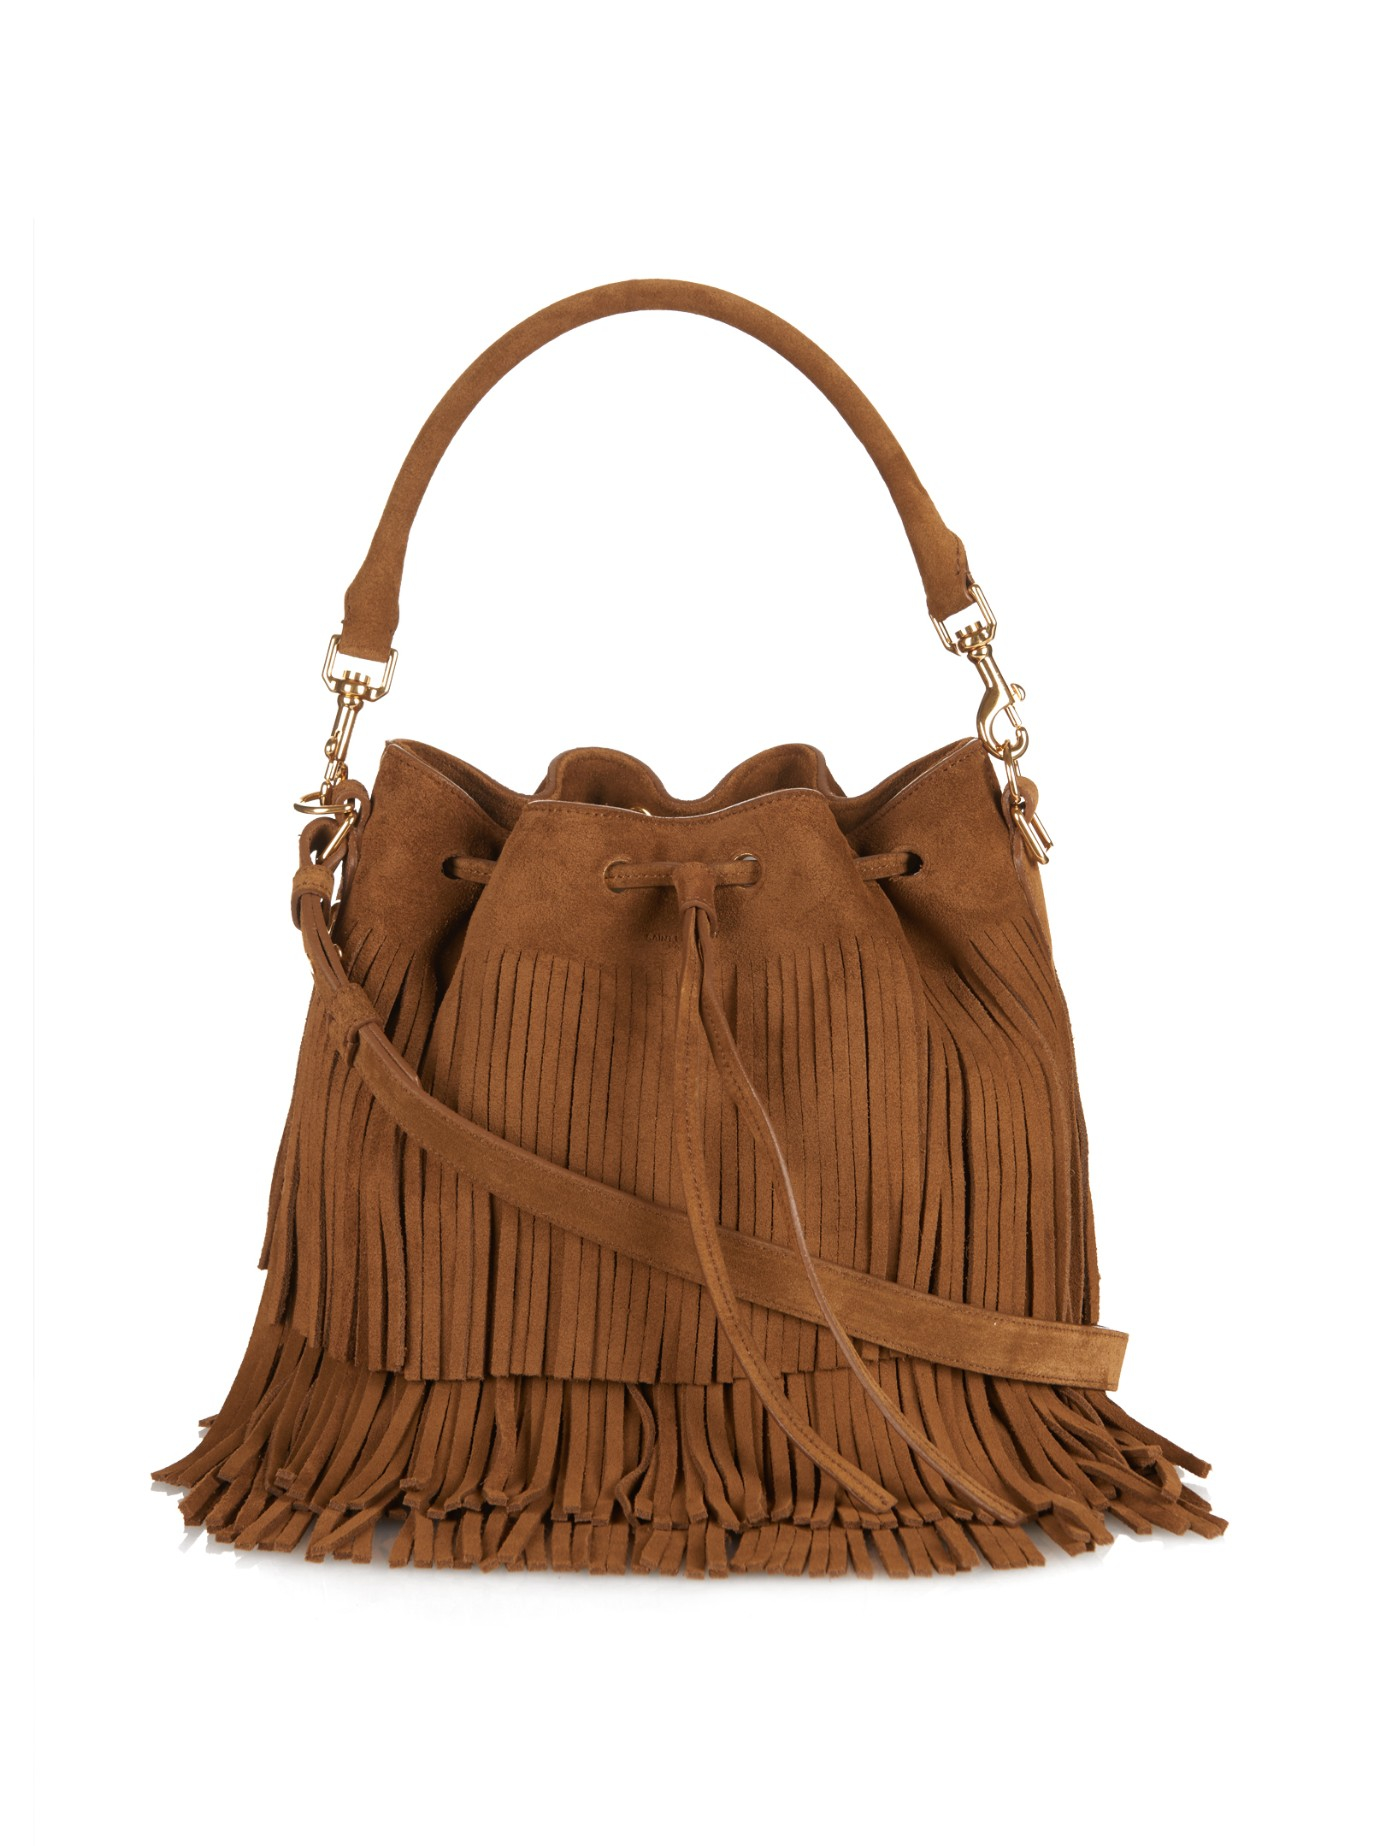 16396680aa Gallery. Previously sold at  MATCHESFASHION.COM · Women s Fringed Bags  Women s Saint Laurent Emmanuelle ...